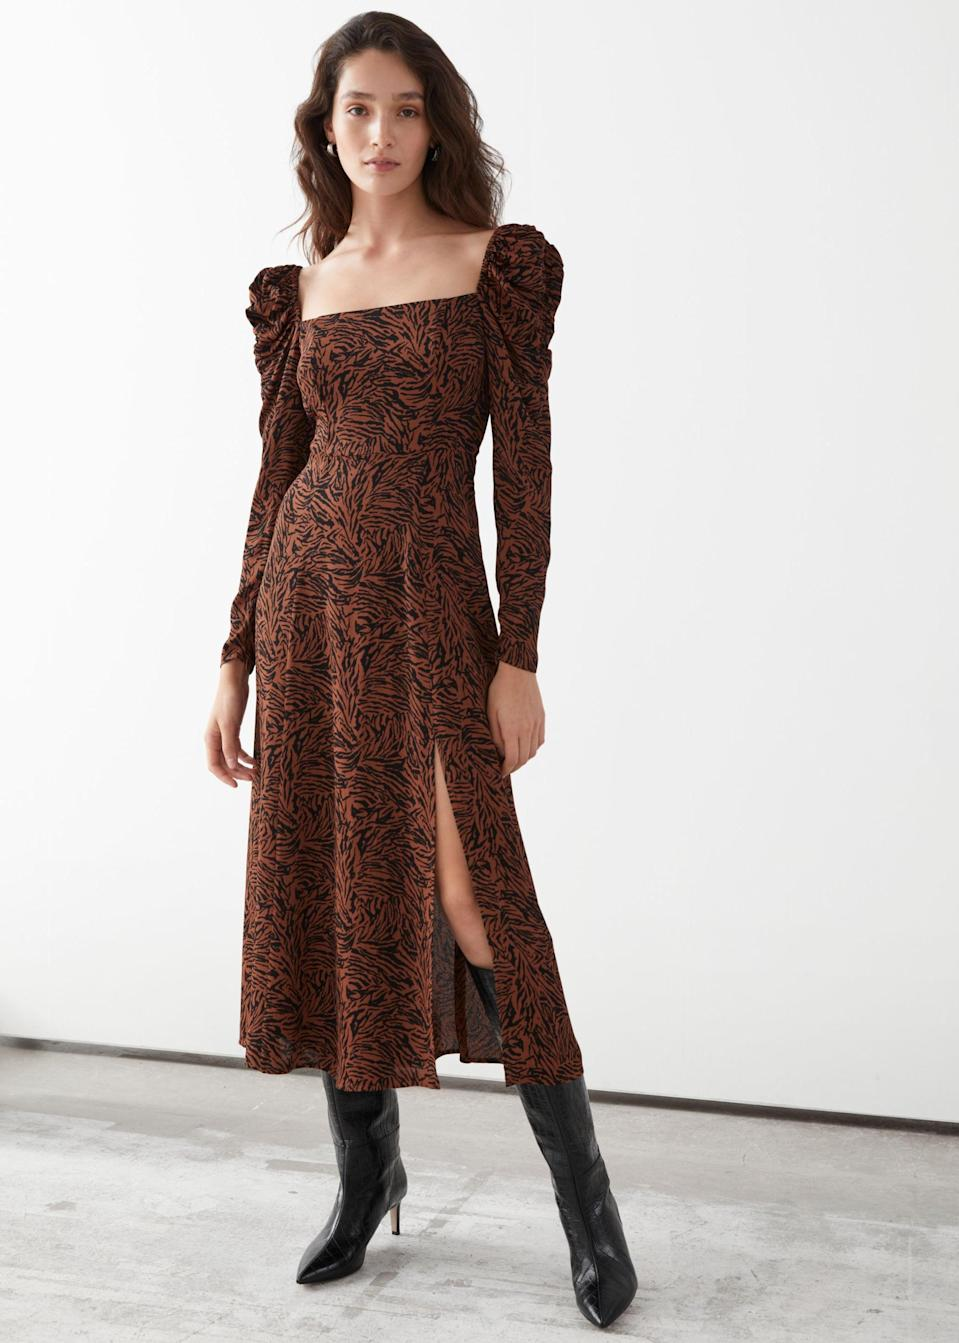 <p>This <span>&amp; Other Stories Satin Square Neck Midi Dress</span> ($52, originally $129) is so pretty and flattering.</p>